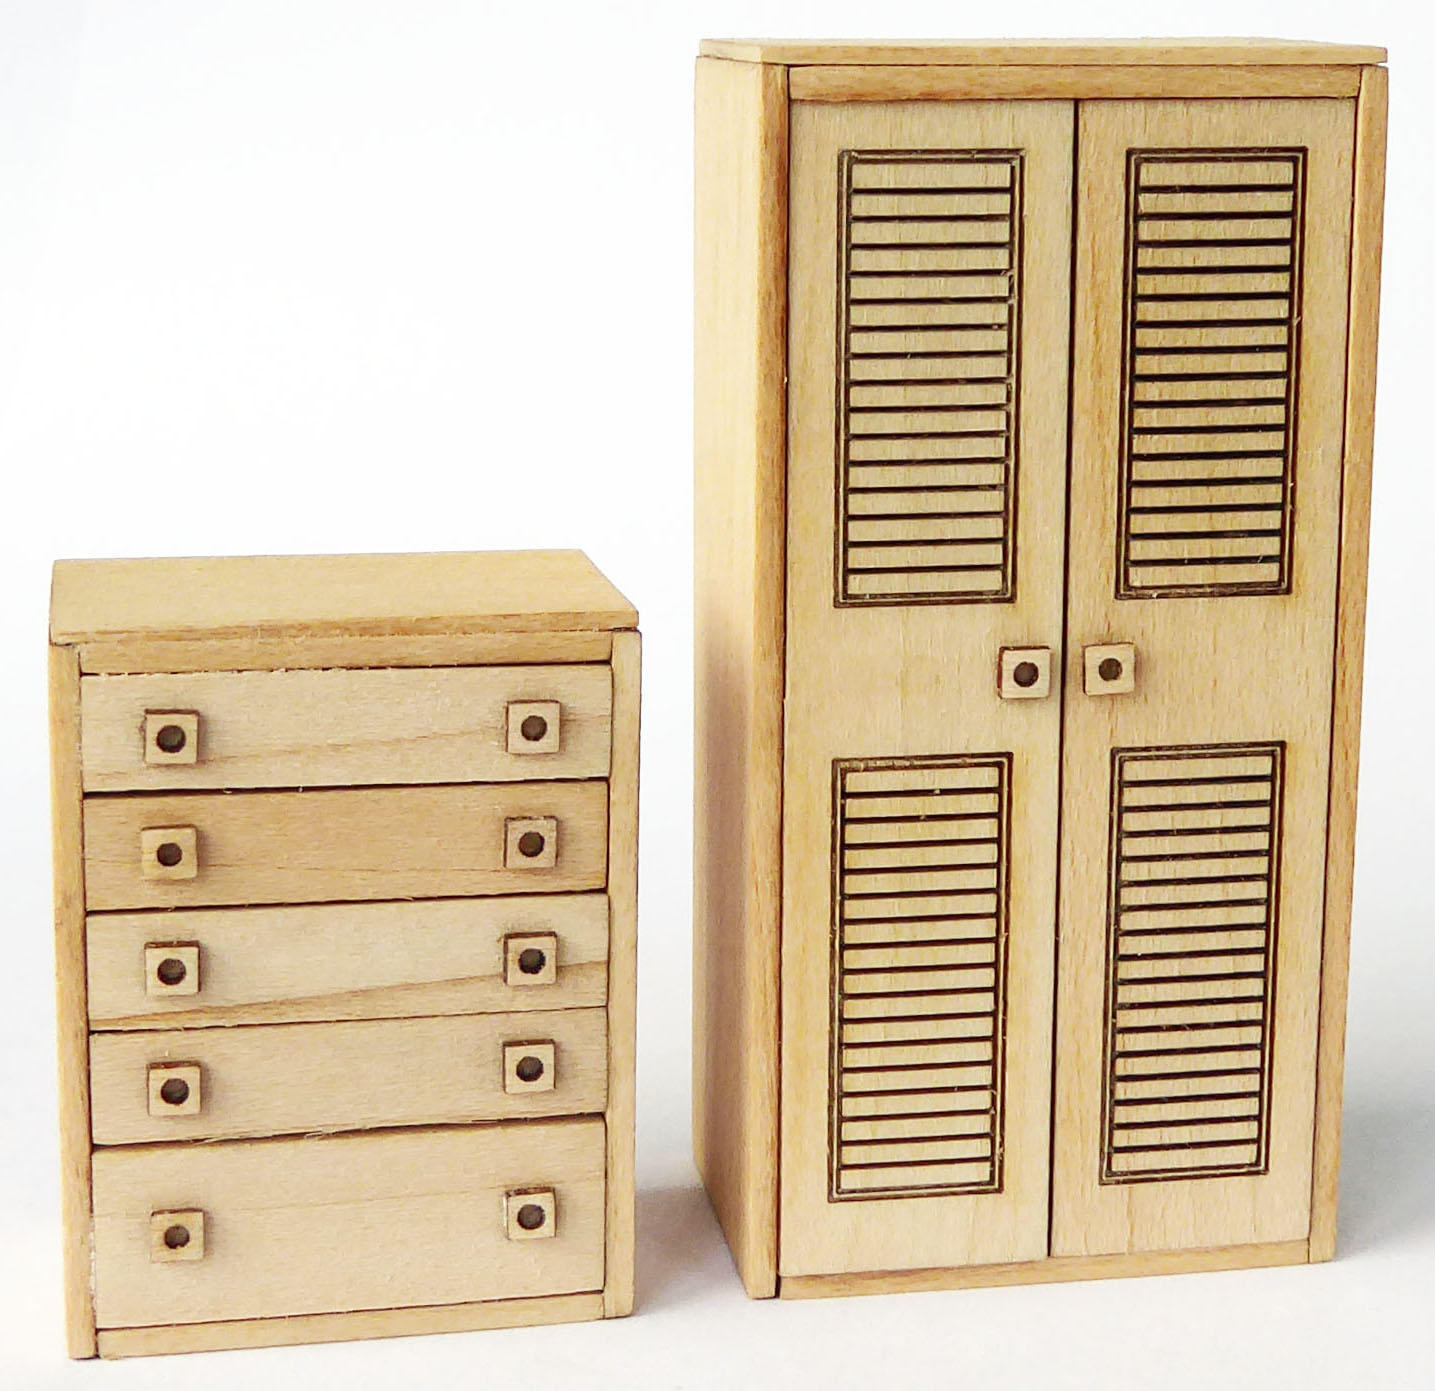 1/24th scale 70s Retro Wardrobe and Drawers Kit